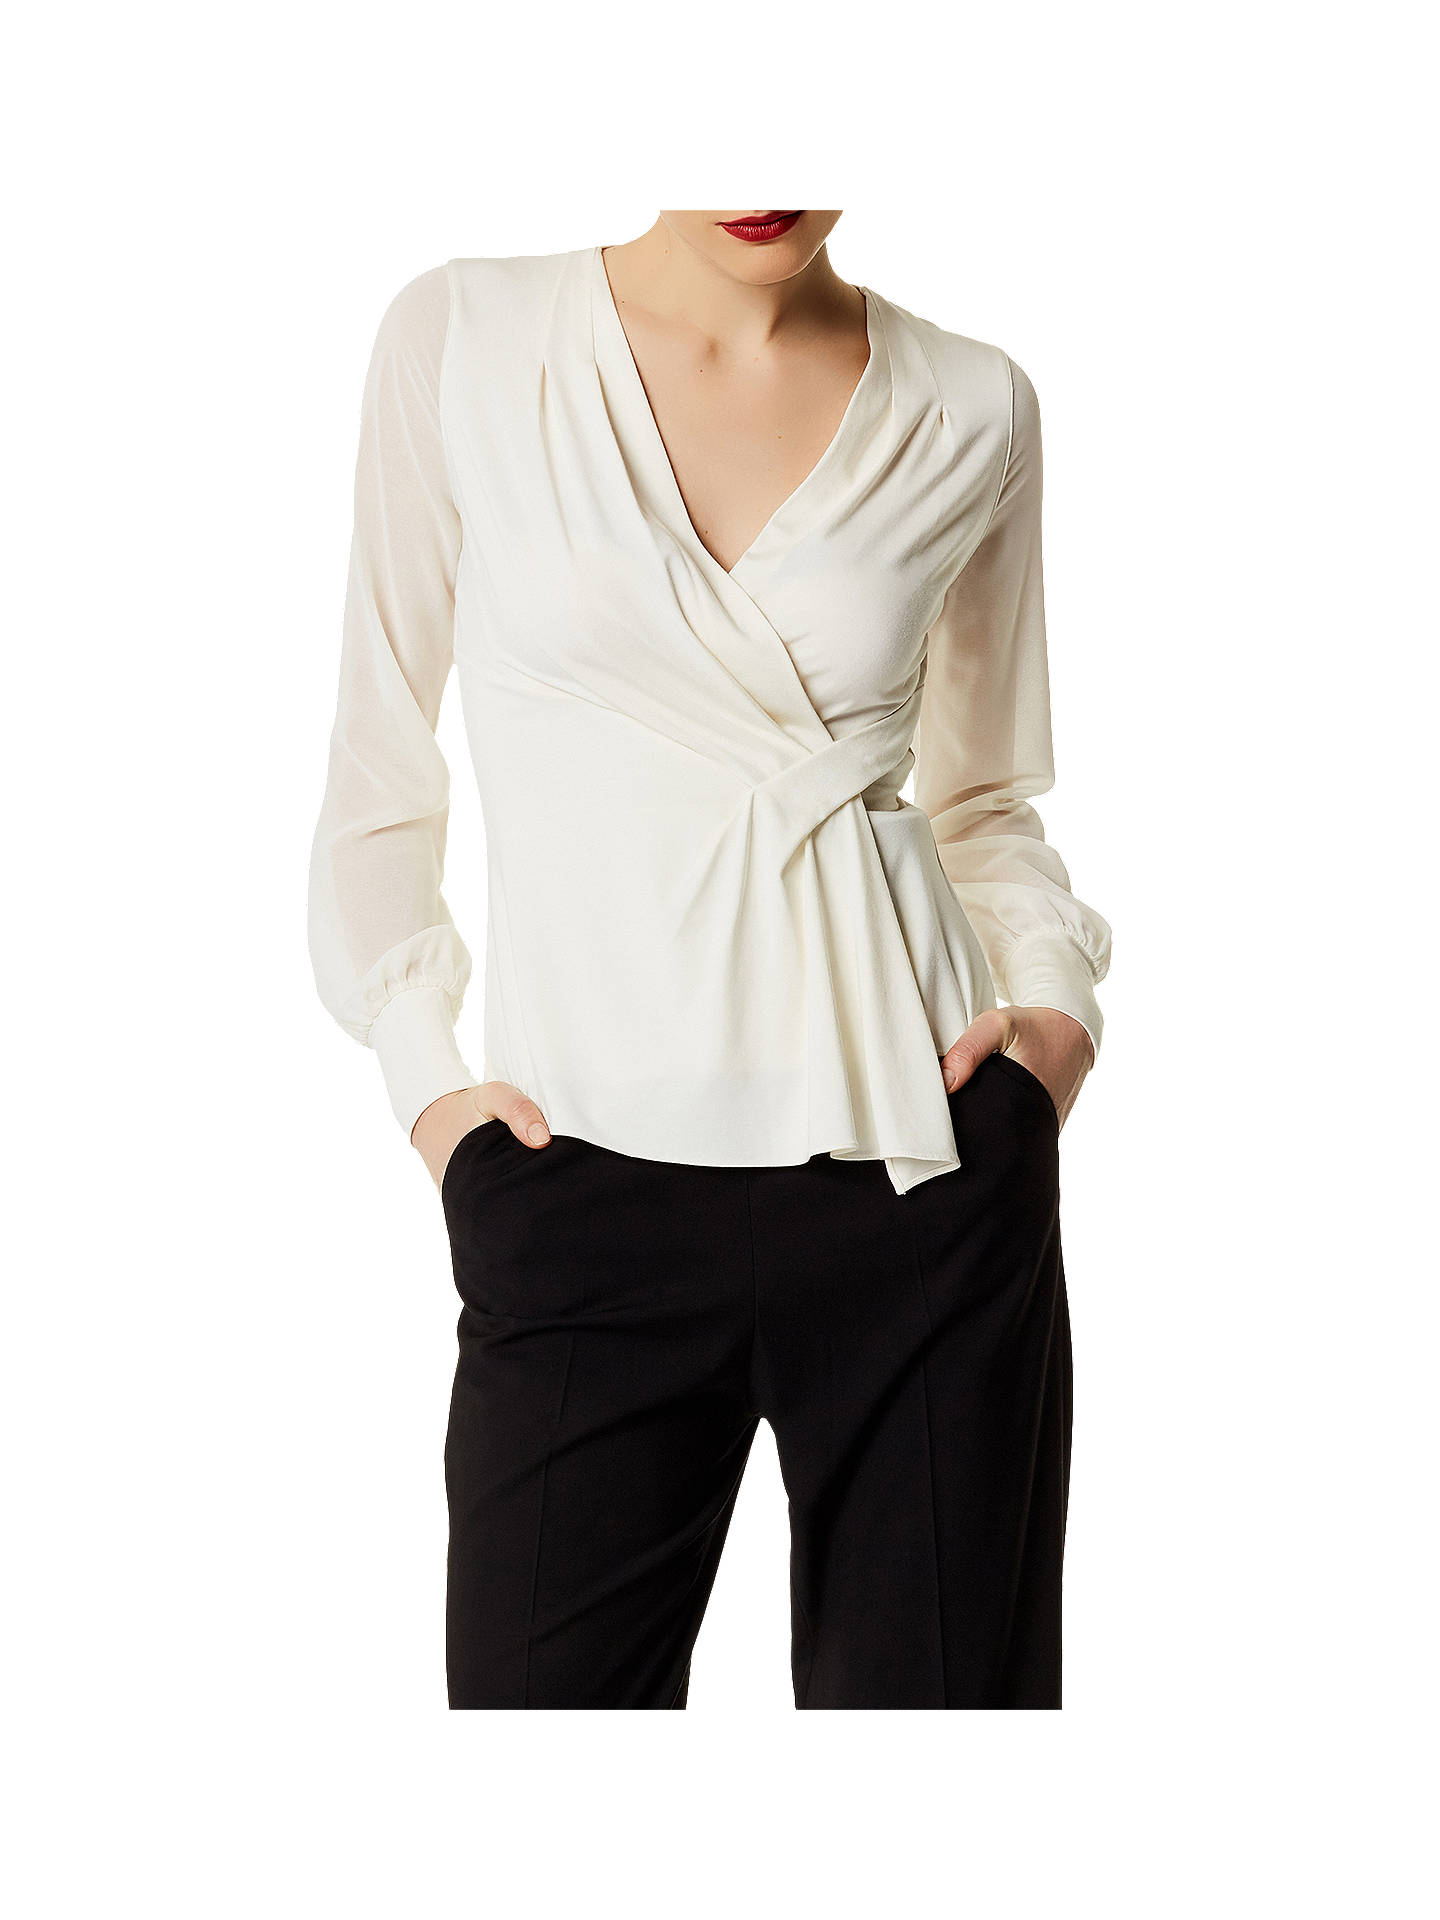 7e1796ea954 Buy Karen Millen Draped Wrap Jersey Top, Ivory, 6 Online at johnlewis.com  ...